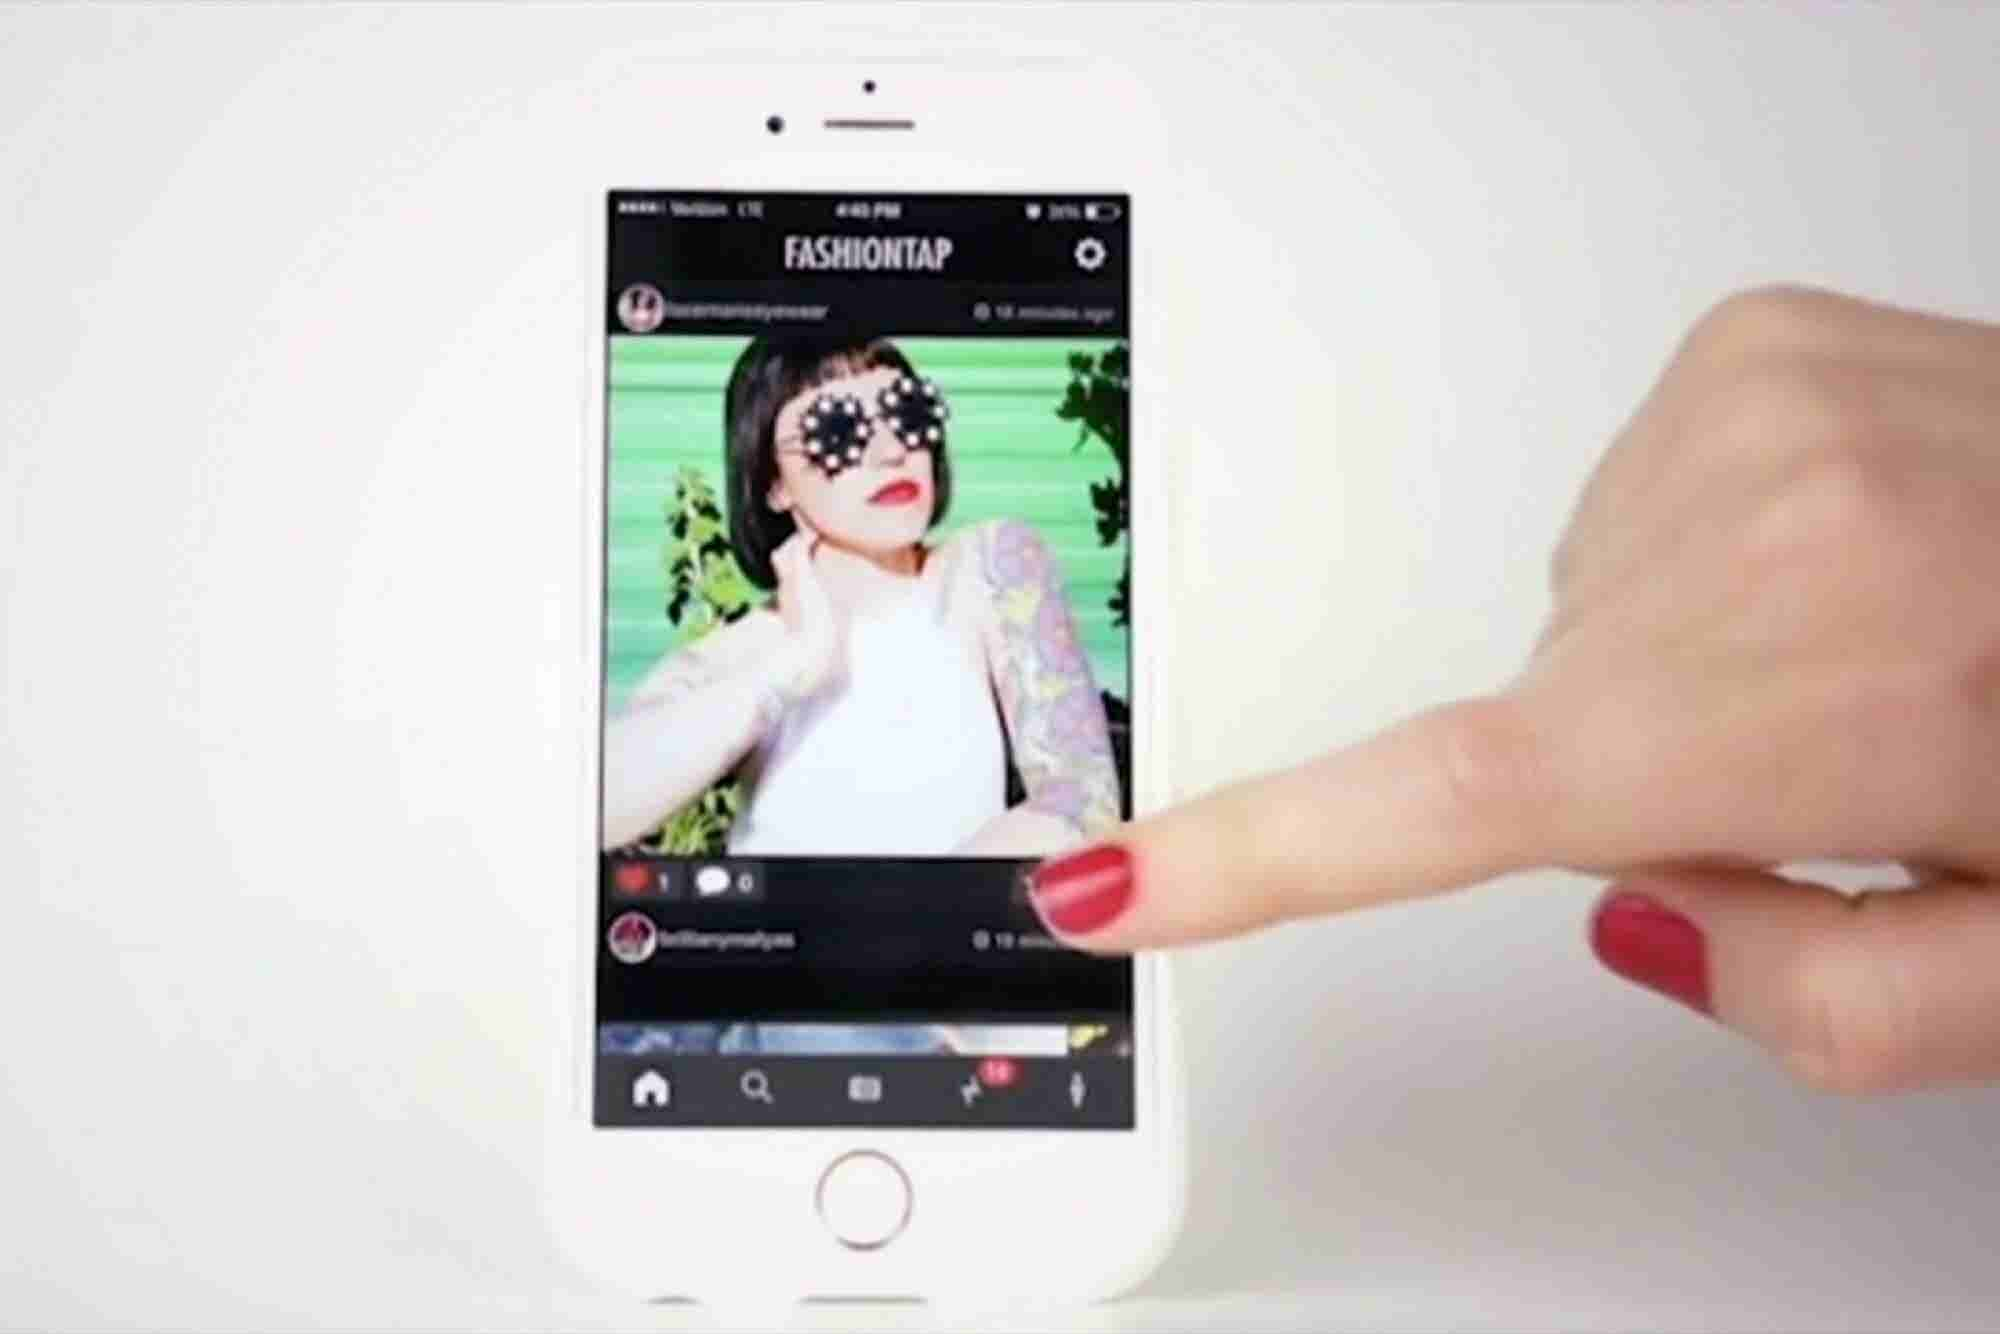 The FashionTap Social-Networking App Bridges the Gap Between Tech and Fashion